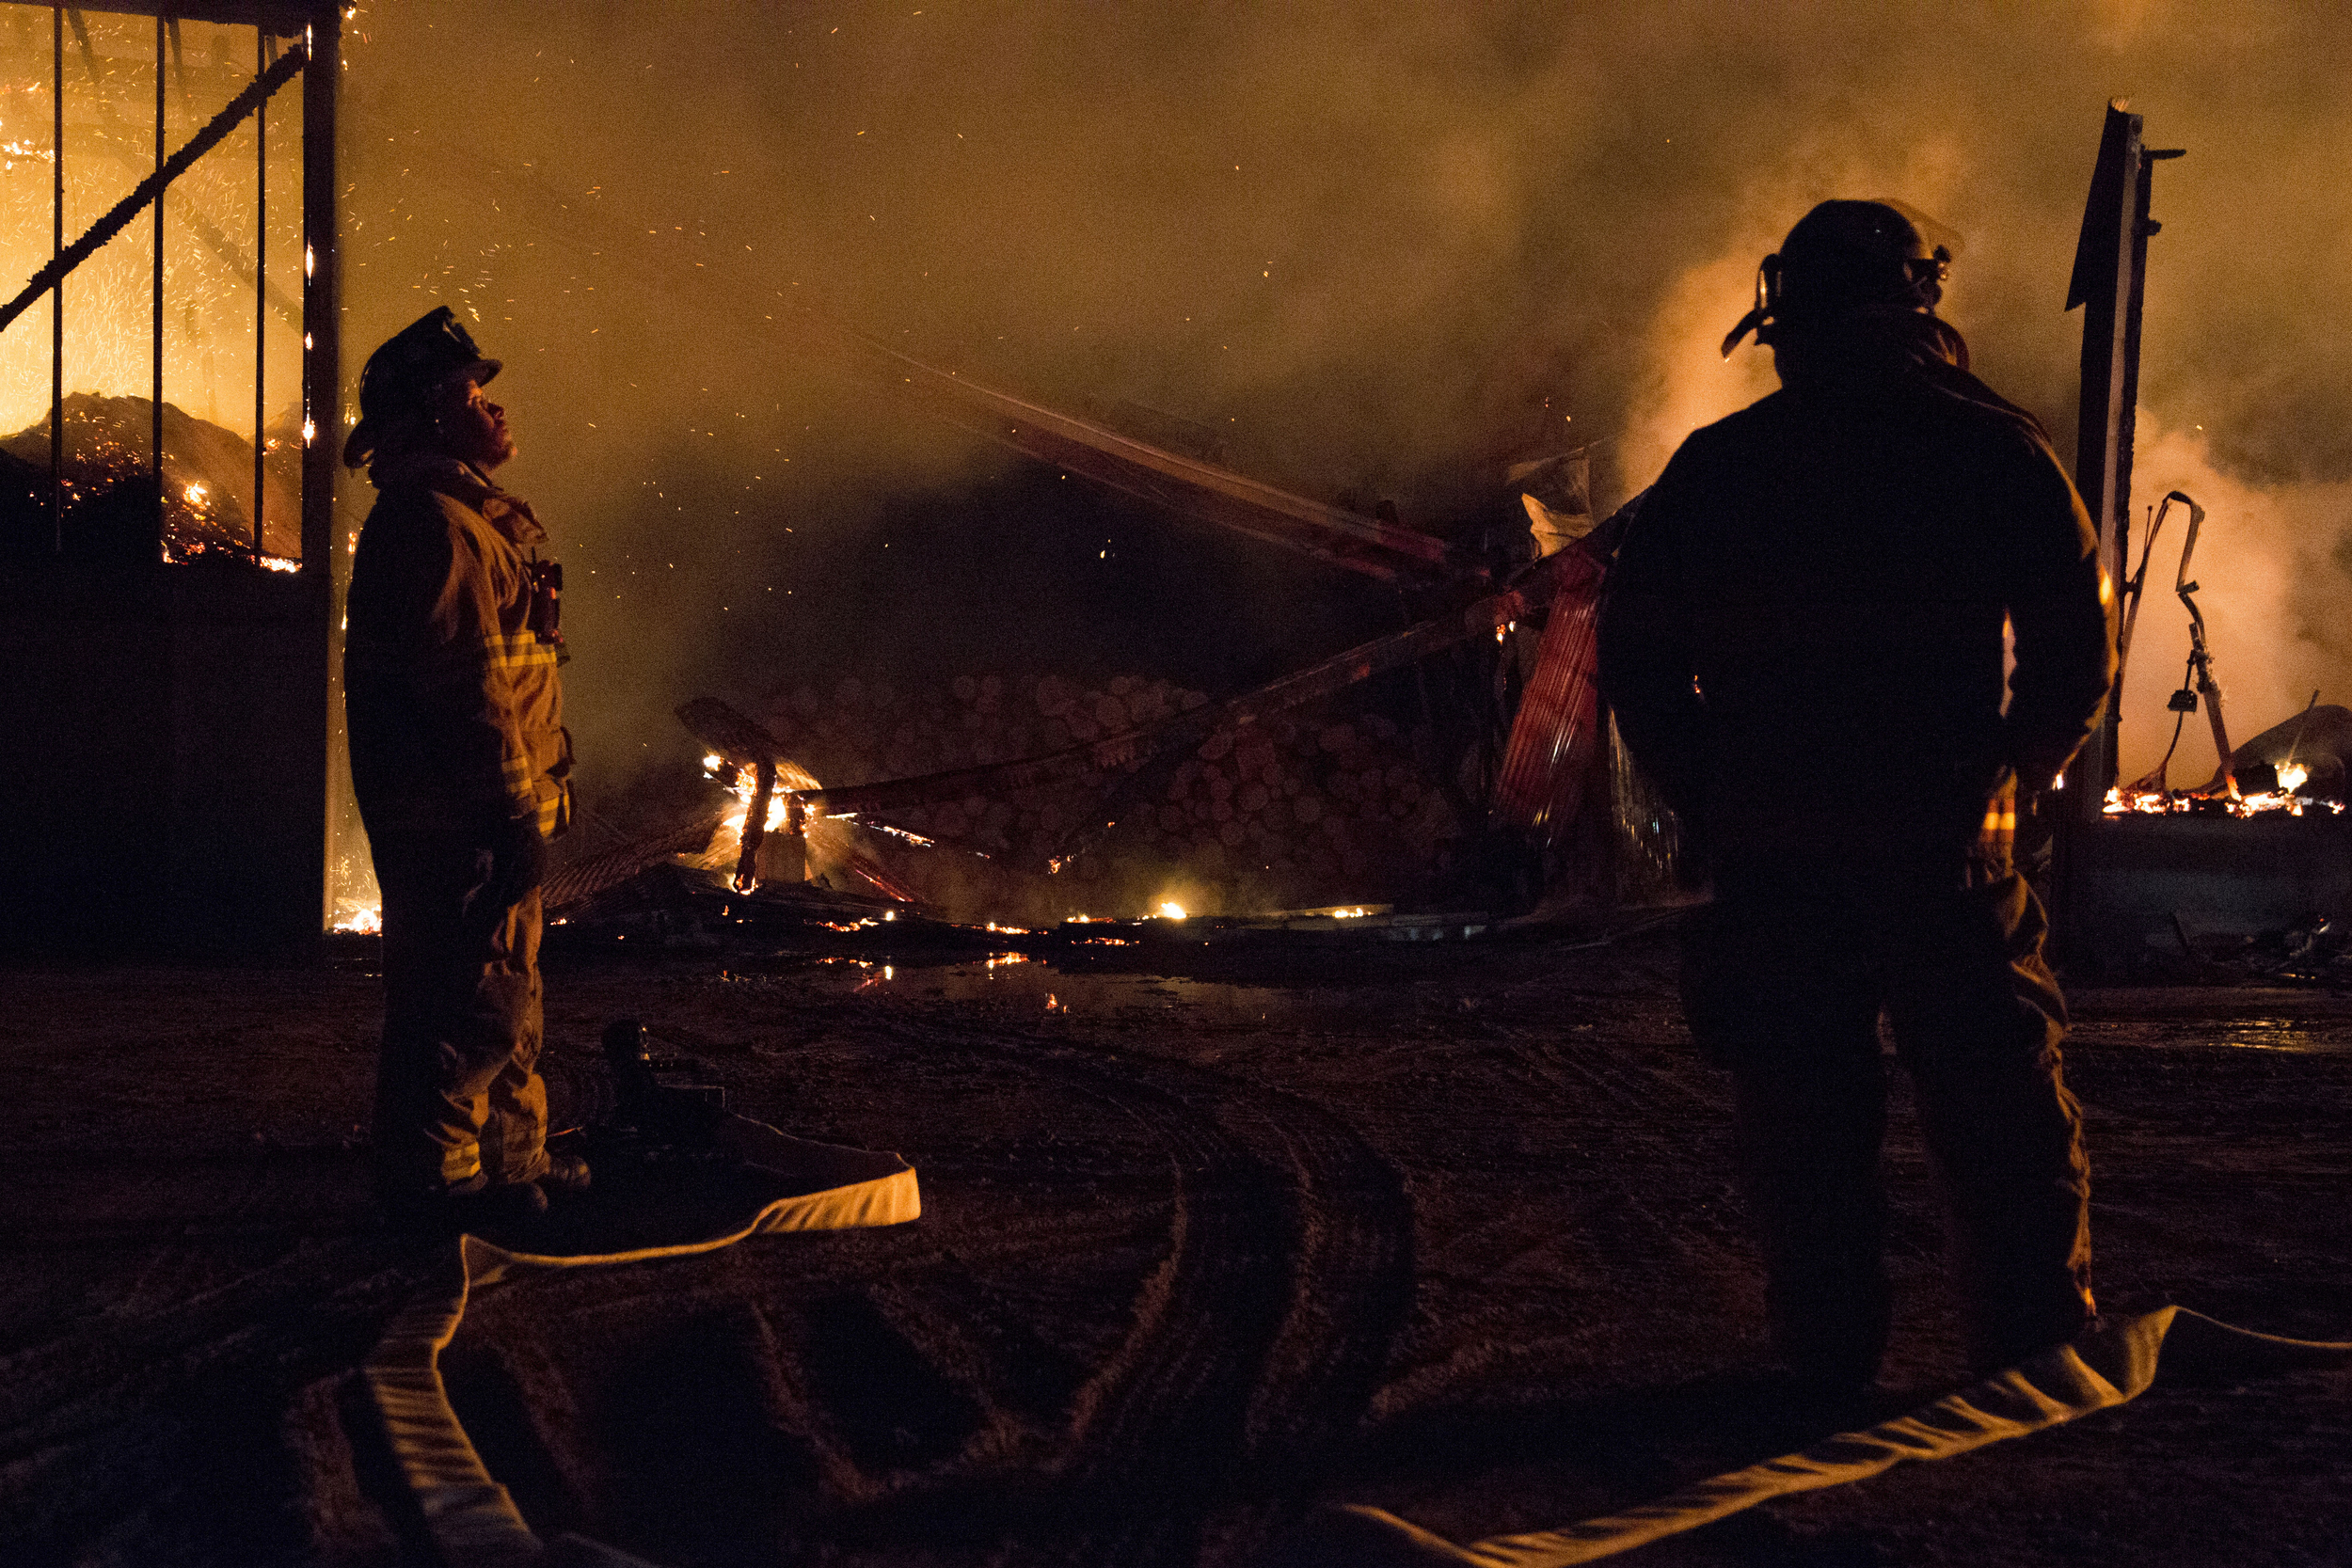 Hartford firefighter Zach Bowley, left, and Fairlee firefighter Geoffrey Mallett watch as firefighters from across the Upper Valley fight to put out a four-alarm fire at Britton Lumber Co in Fairlee, Vt., on Saturday, March 28, 2015.